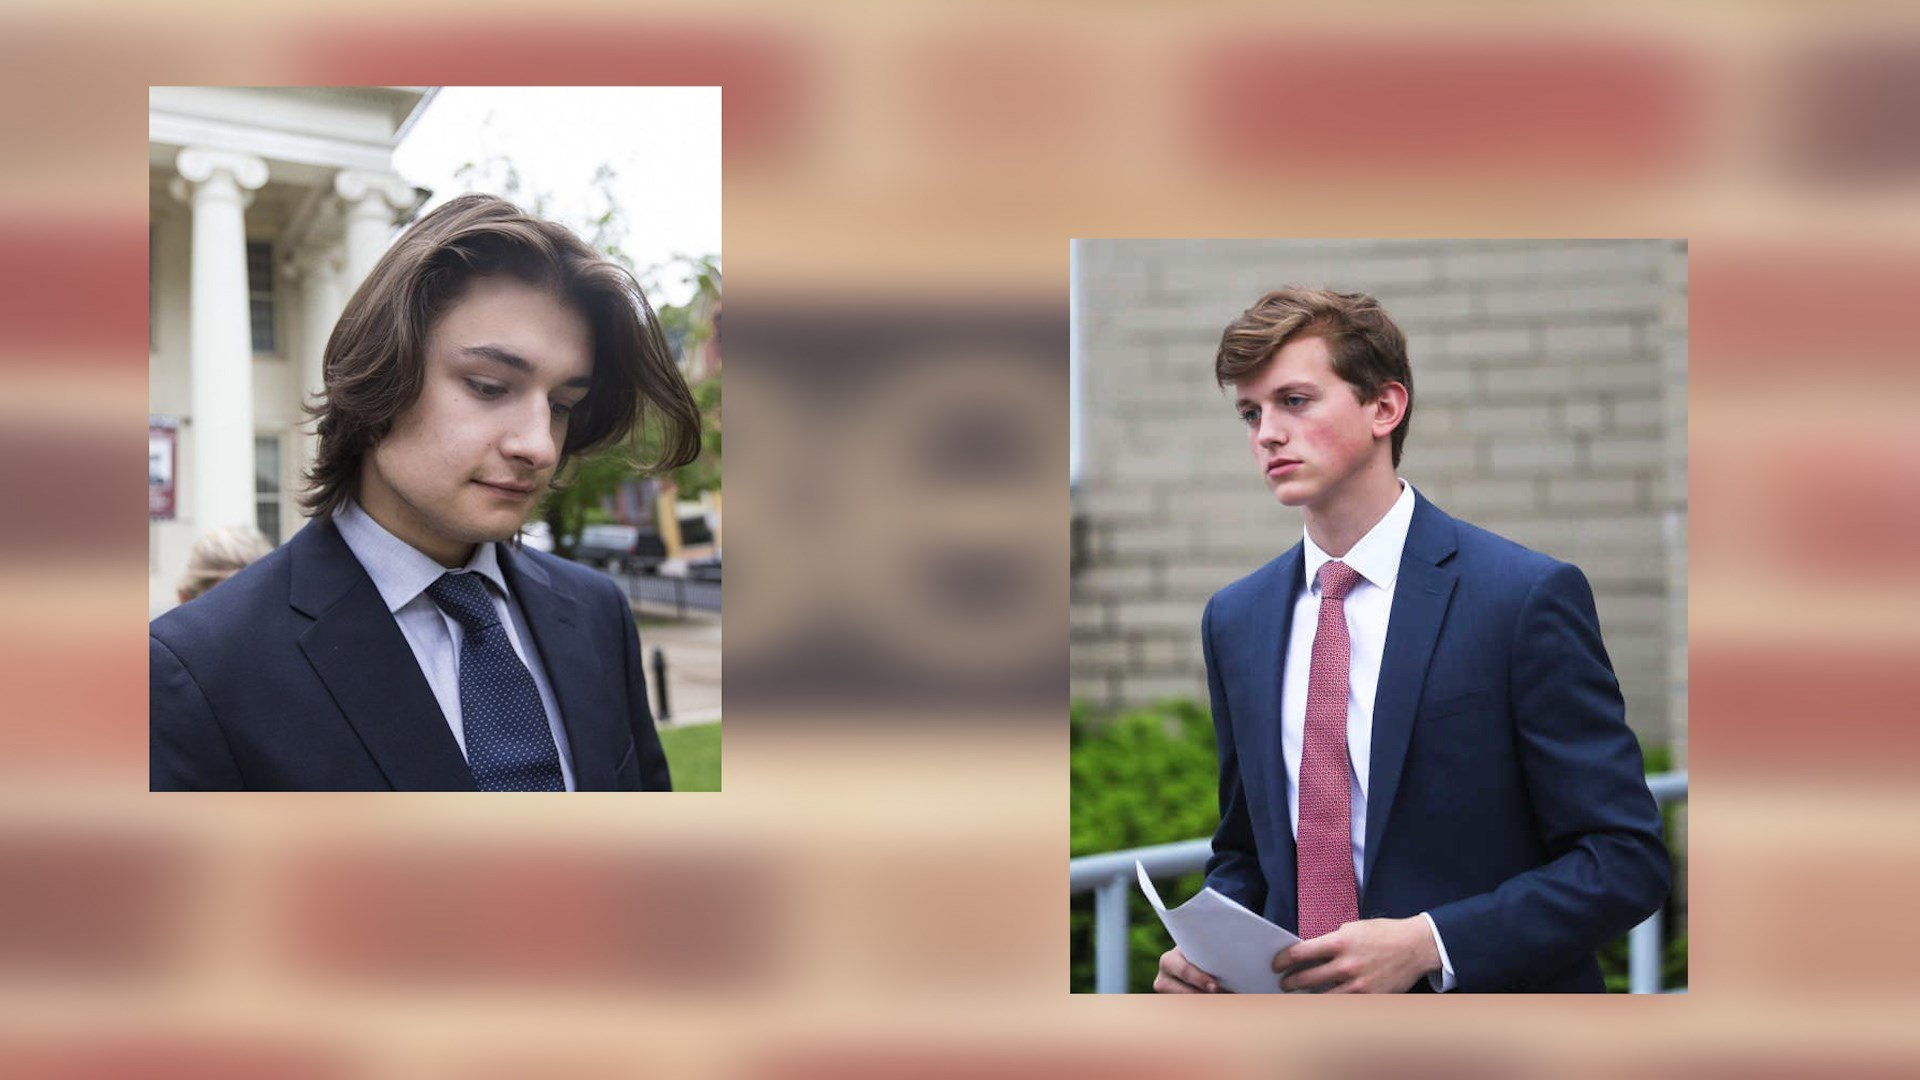 Fairway Auto Center >> Hearing Resumes Monday for Penn State Fraternity Brothers in Haz - Erie News Now | WICU & WSEE ...